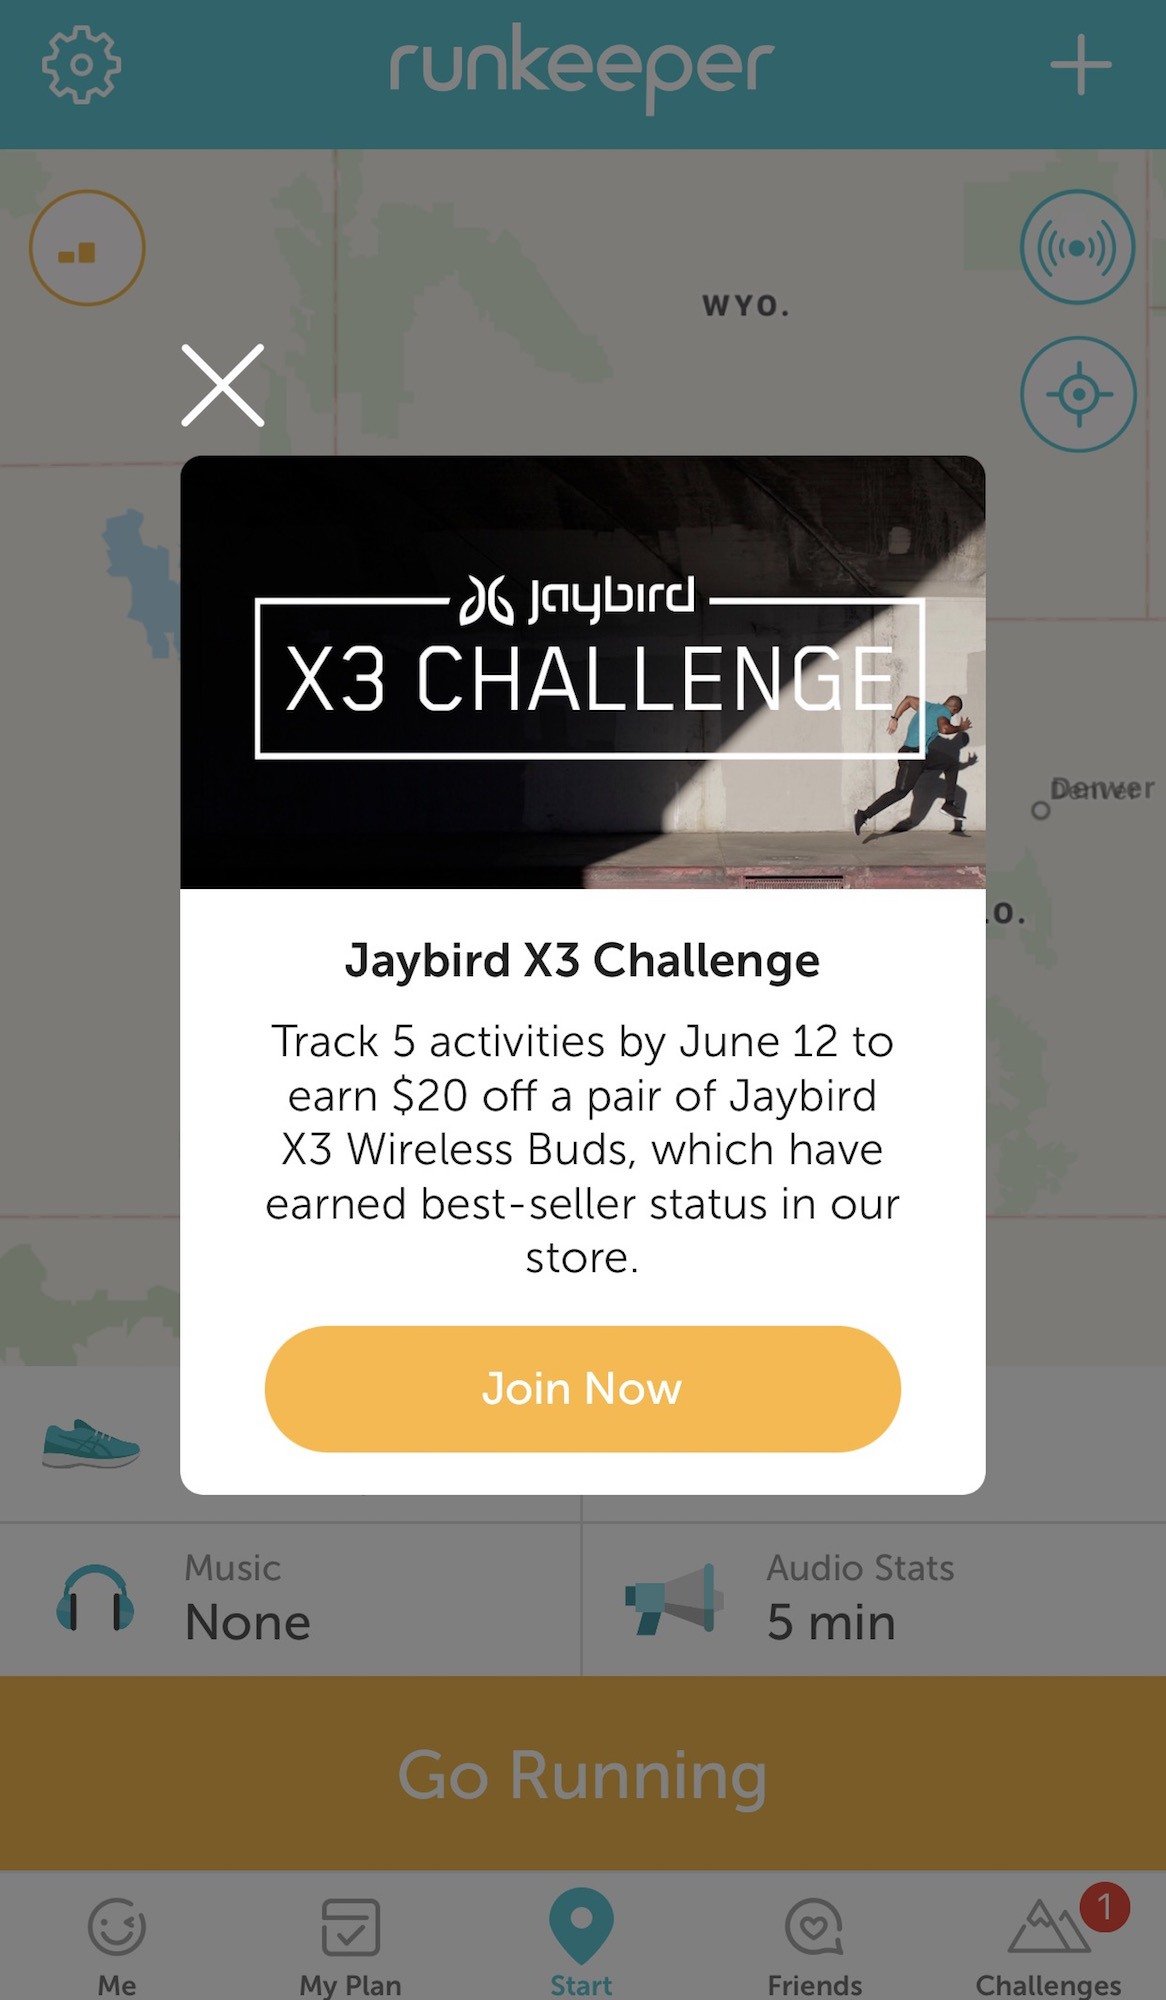 Jaybird and Runkeeper Team Up to Offer the Ultimate Listening Experience for Runners